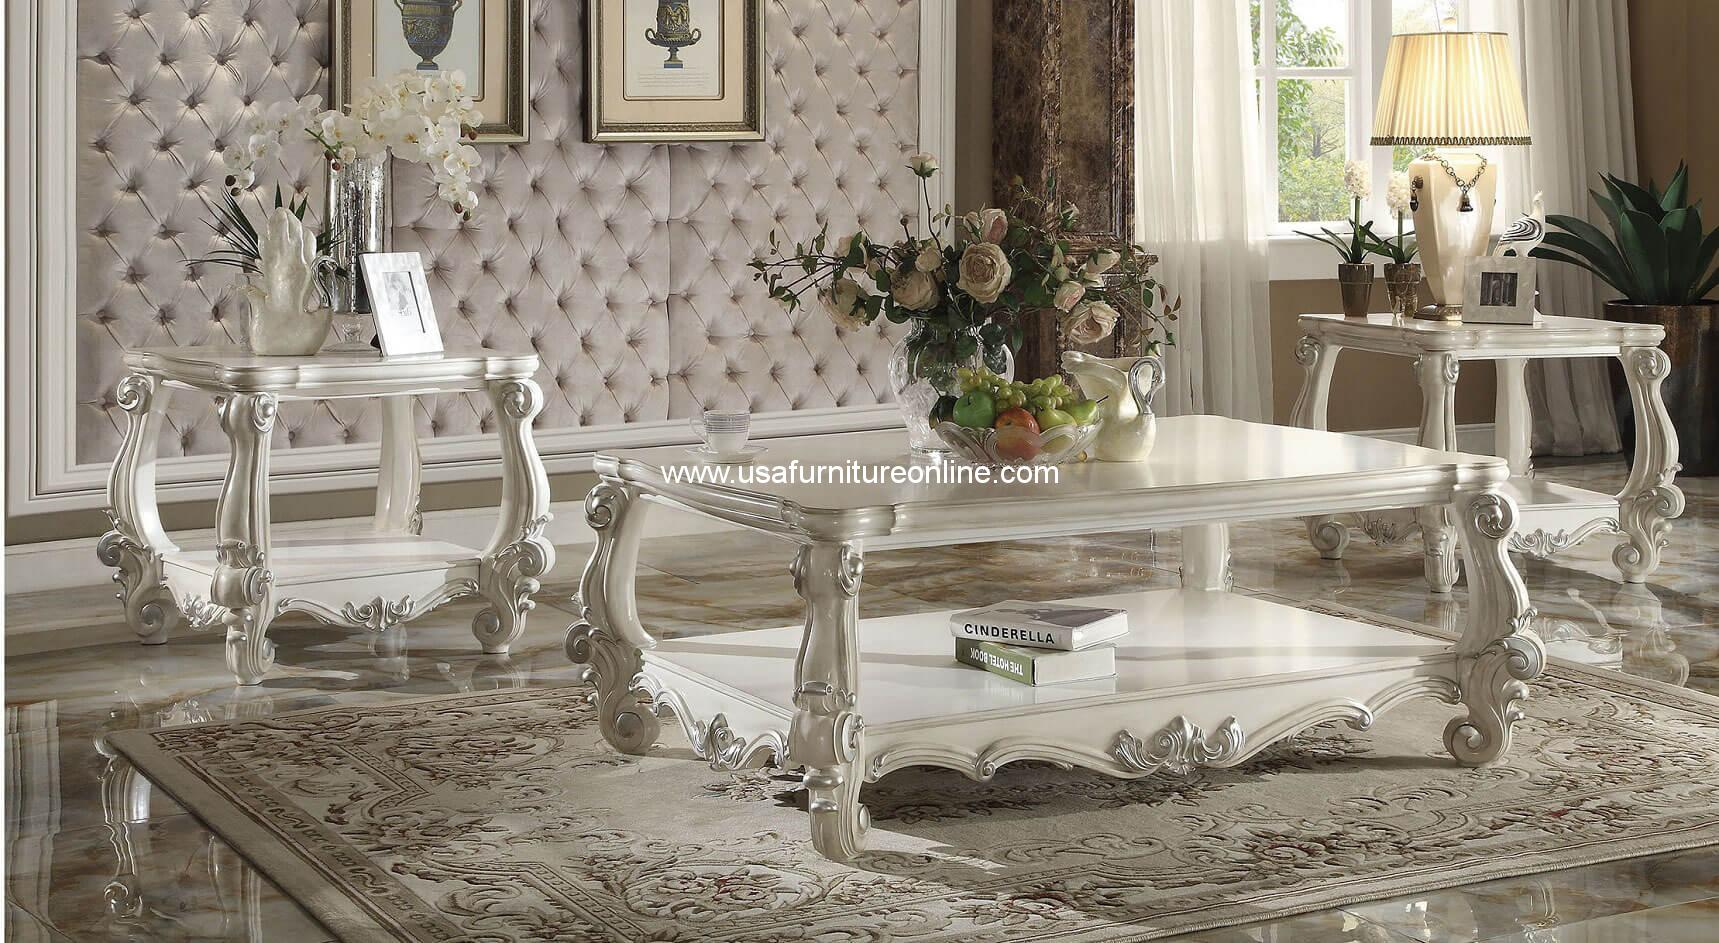 Game Table And Chairs Set Acme 3 Piece Versailles Coffee Table Set In Bone White ...